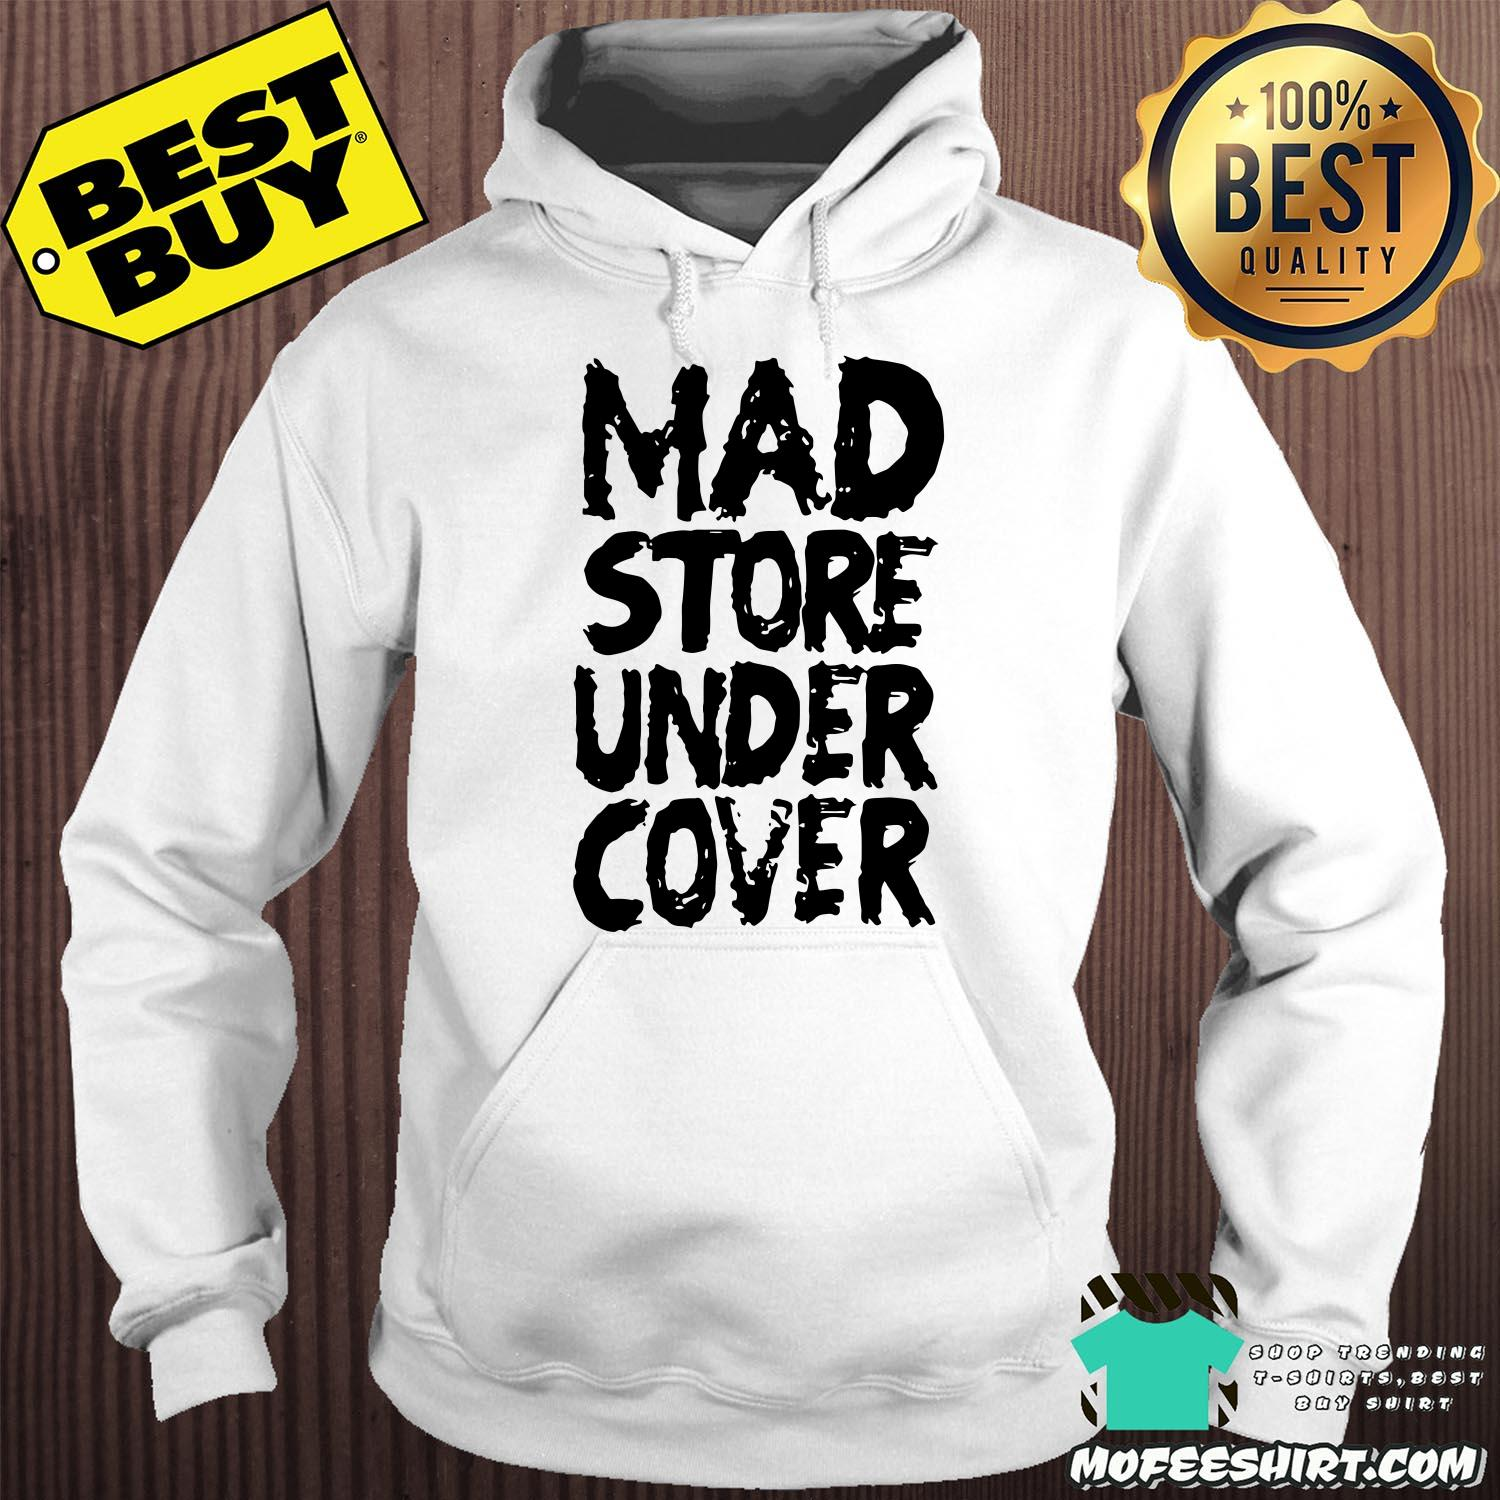 mad store under cover hoodie -  Mad Store Under Cover shirt